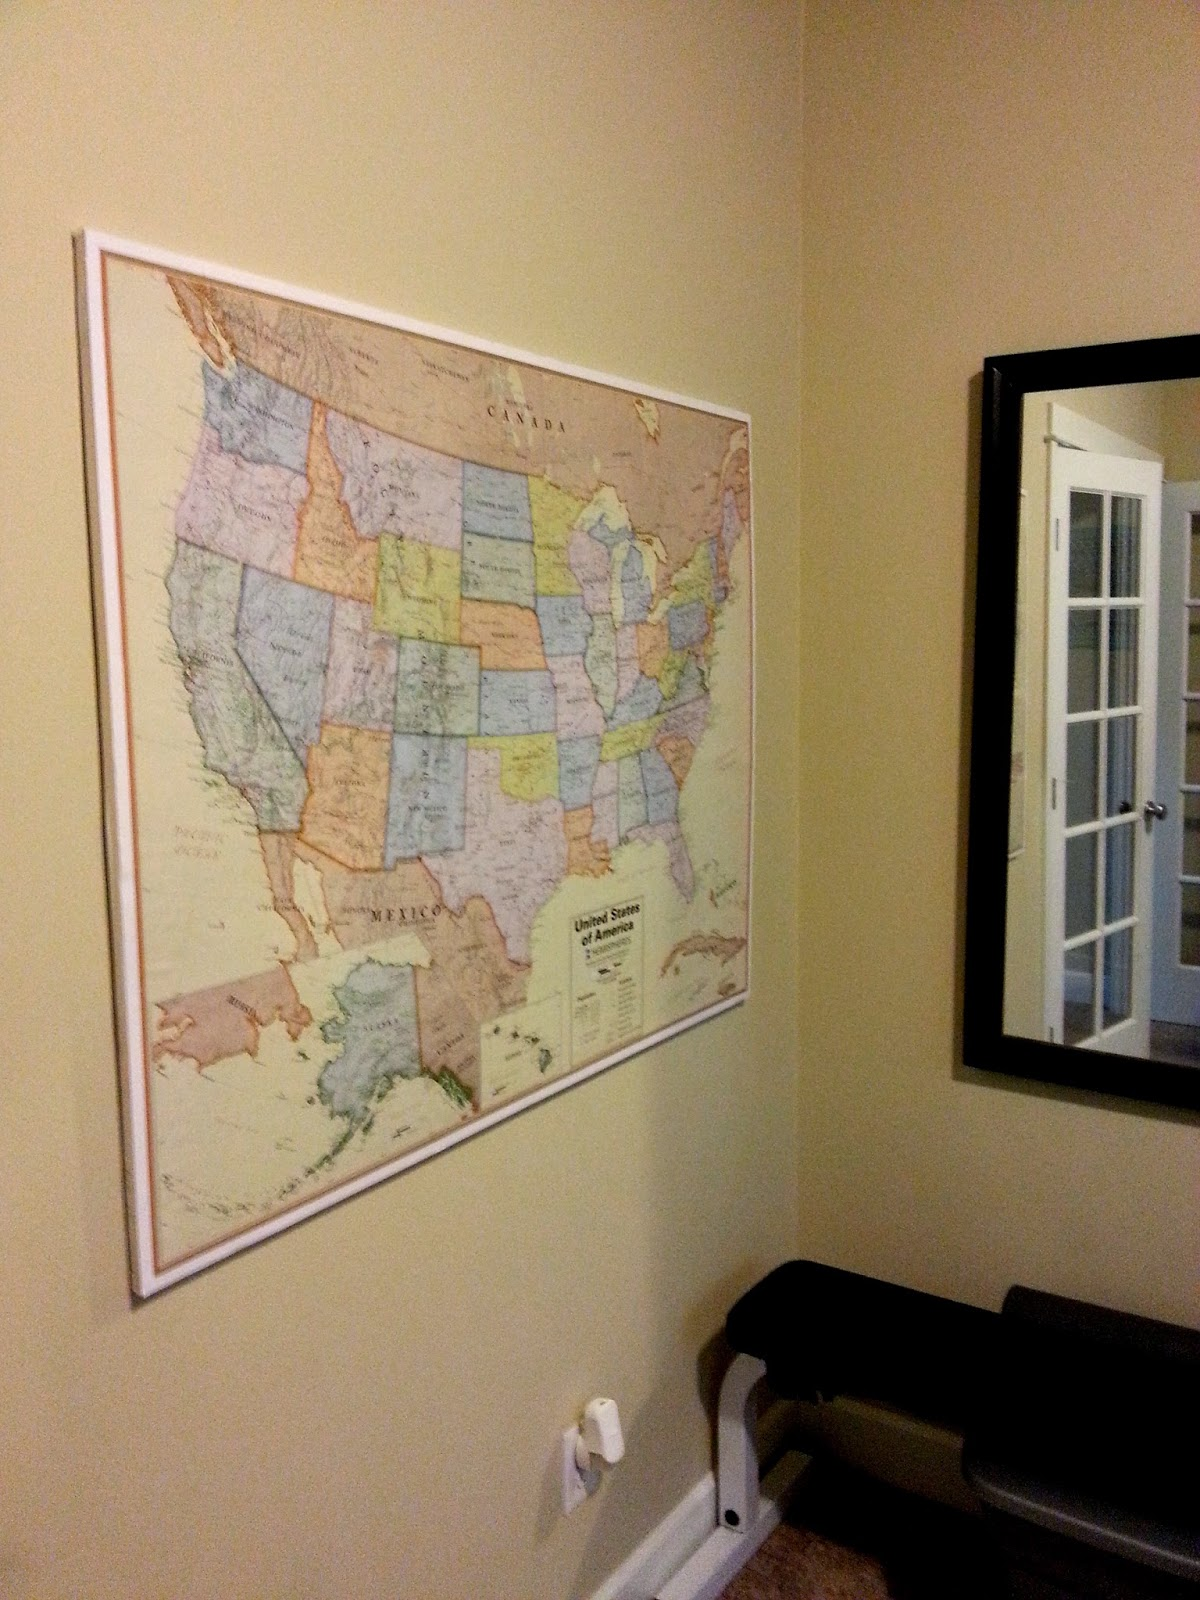 Mount and Hang Maps with Ease